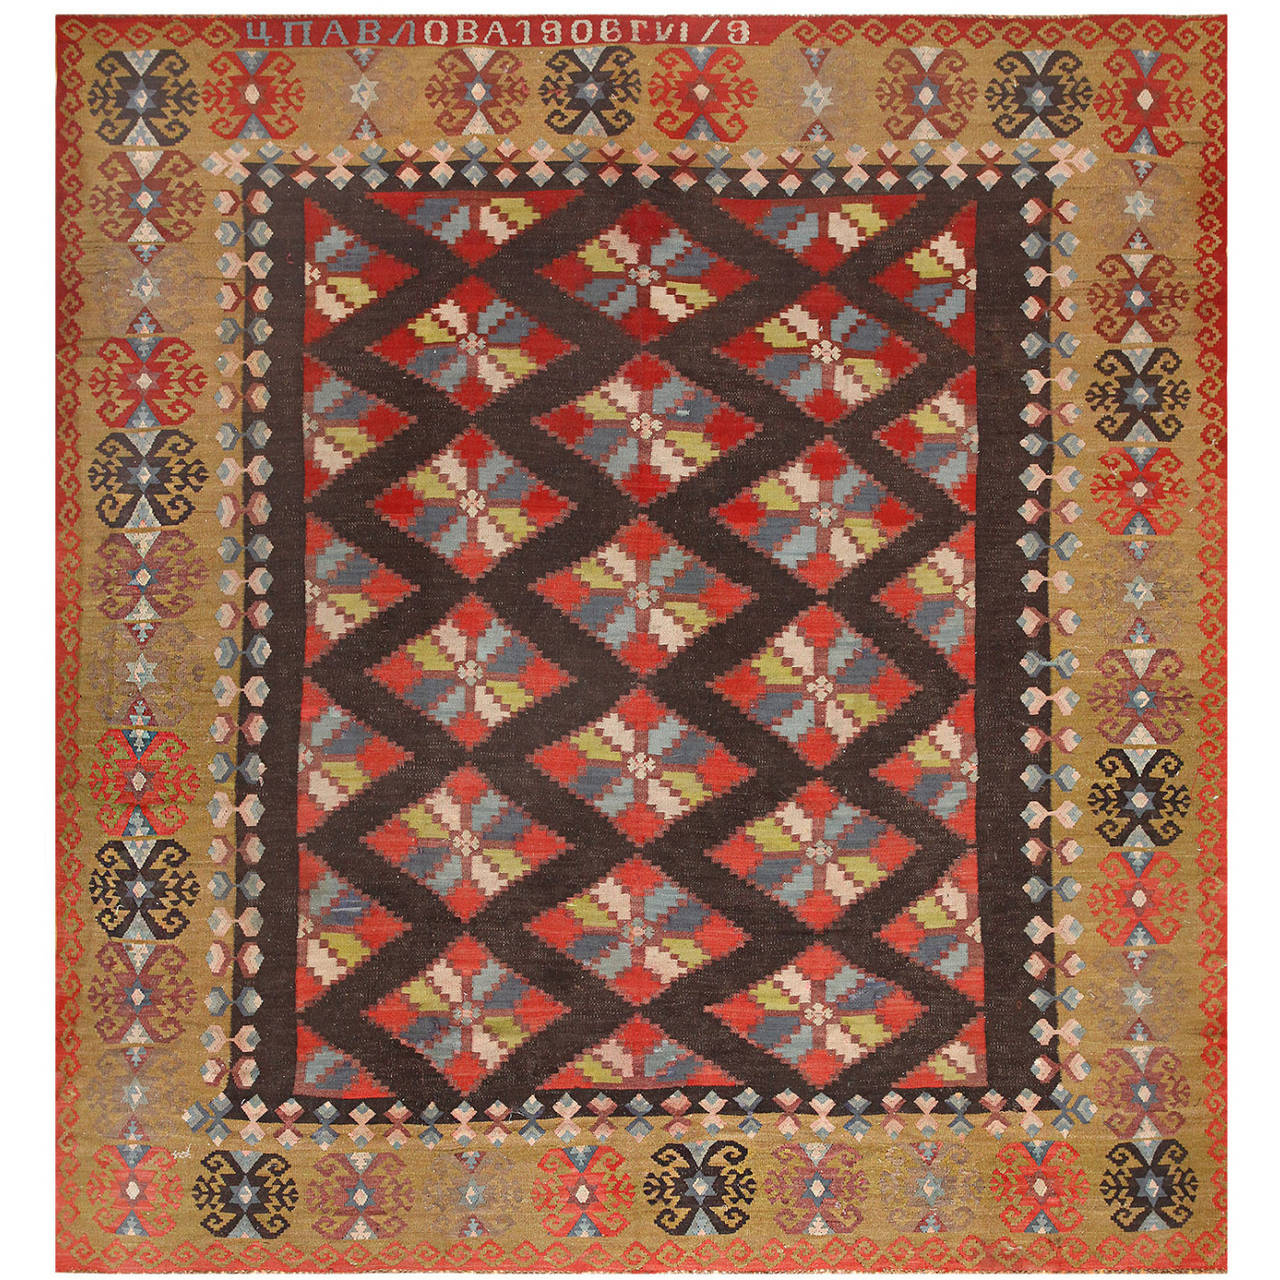 Antique room size besserabian carpet for sale at 1stdibs for Room size rugs